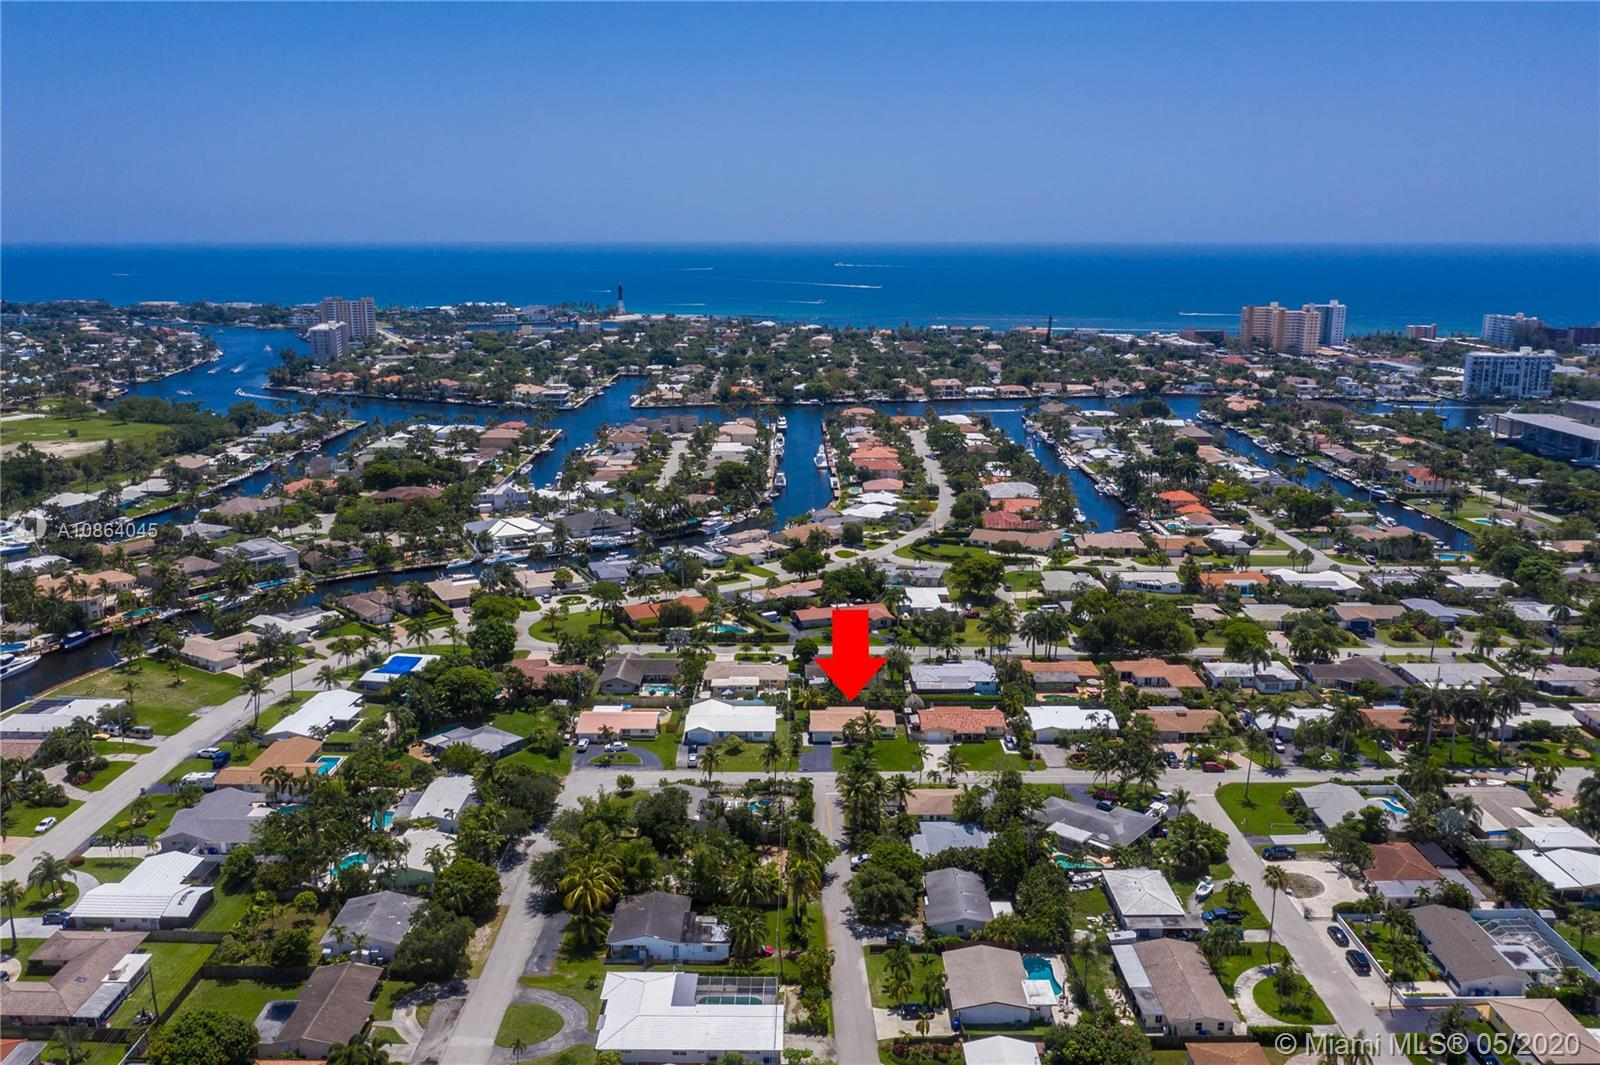 WHAT A GREAT LOCATION WITHIN A MILE OF THE OCEAN IS THIS TASTEFULLY DECORATED HOME. DEFINITELY ABOVE THE REST.NEWER BARREL ROOF, IMPACT WINDOWS AND DOORS INSTALLED 2019, INGROUND POOL WITH MASSAGING JETS, NEWLY FENCED YARD WITH TROPICAL LANDSCAPING.THE KITCHEN HAS TUMBLED MARBLE COUNTERS & BACK SPLASH AND STAINLESS-STEEL APPLIANCES. 20 INCH DIAGONAL PORCELAIN TILE THROUGHOUT THE LIVING AREAS. THE HOME HAS BEEN FRESHLY PAINTED. THERE IS SPACIOUS GARAGE, SEPERATE LAUNDRY AND UTILITY ROOM.